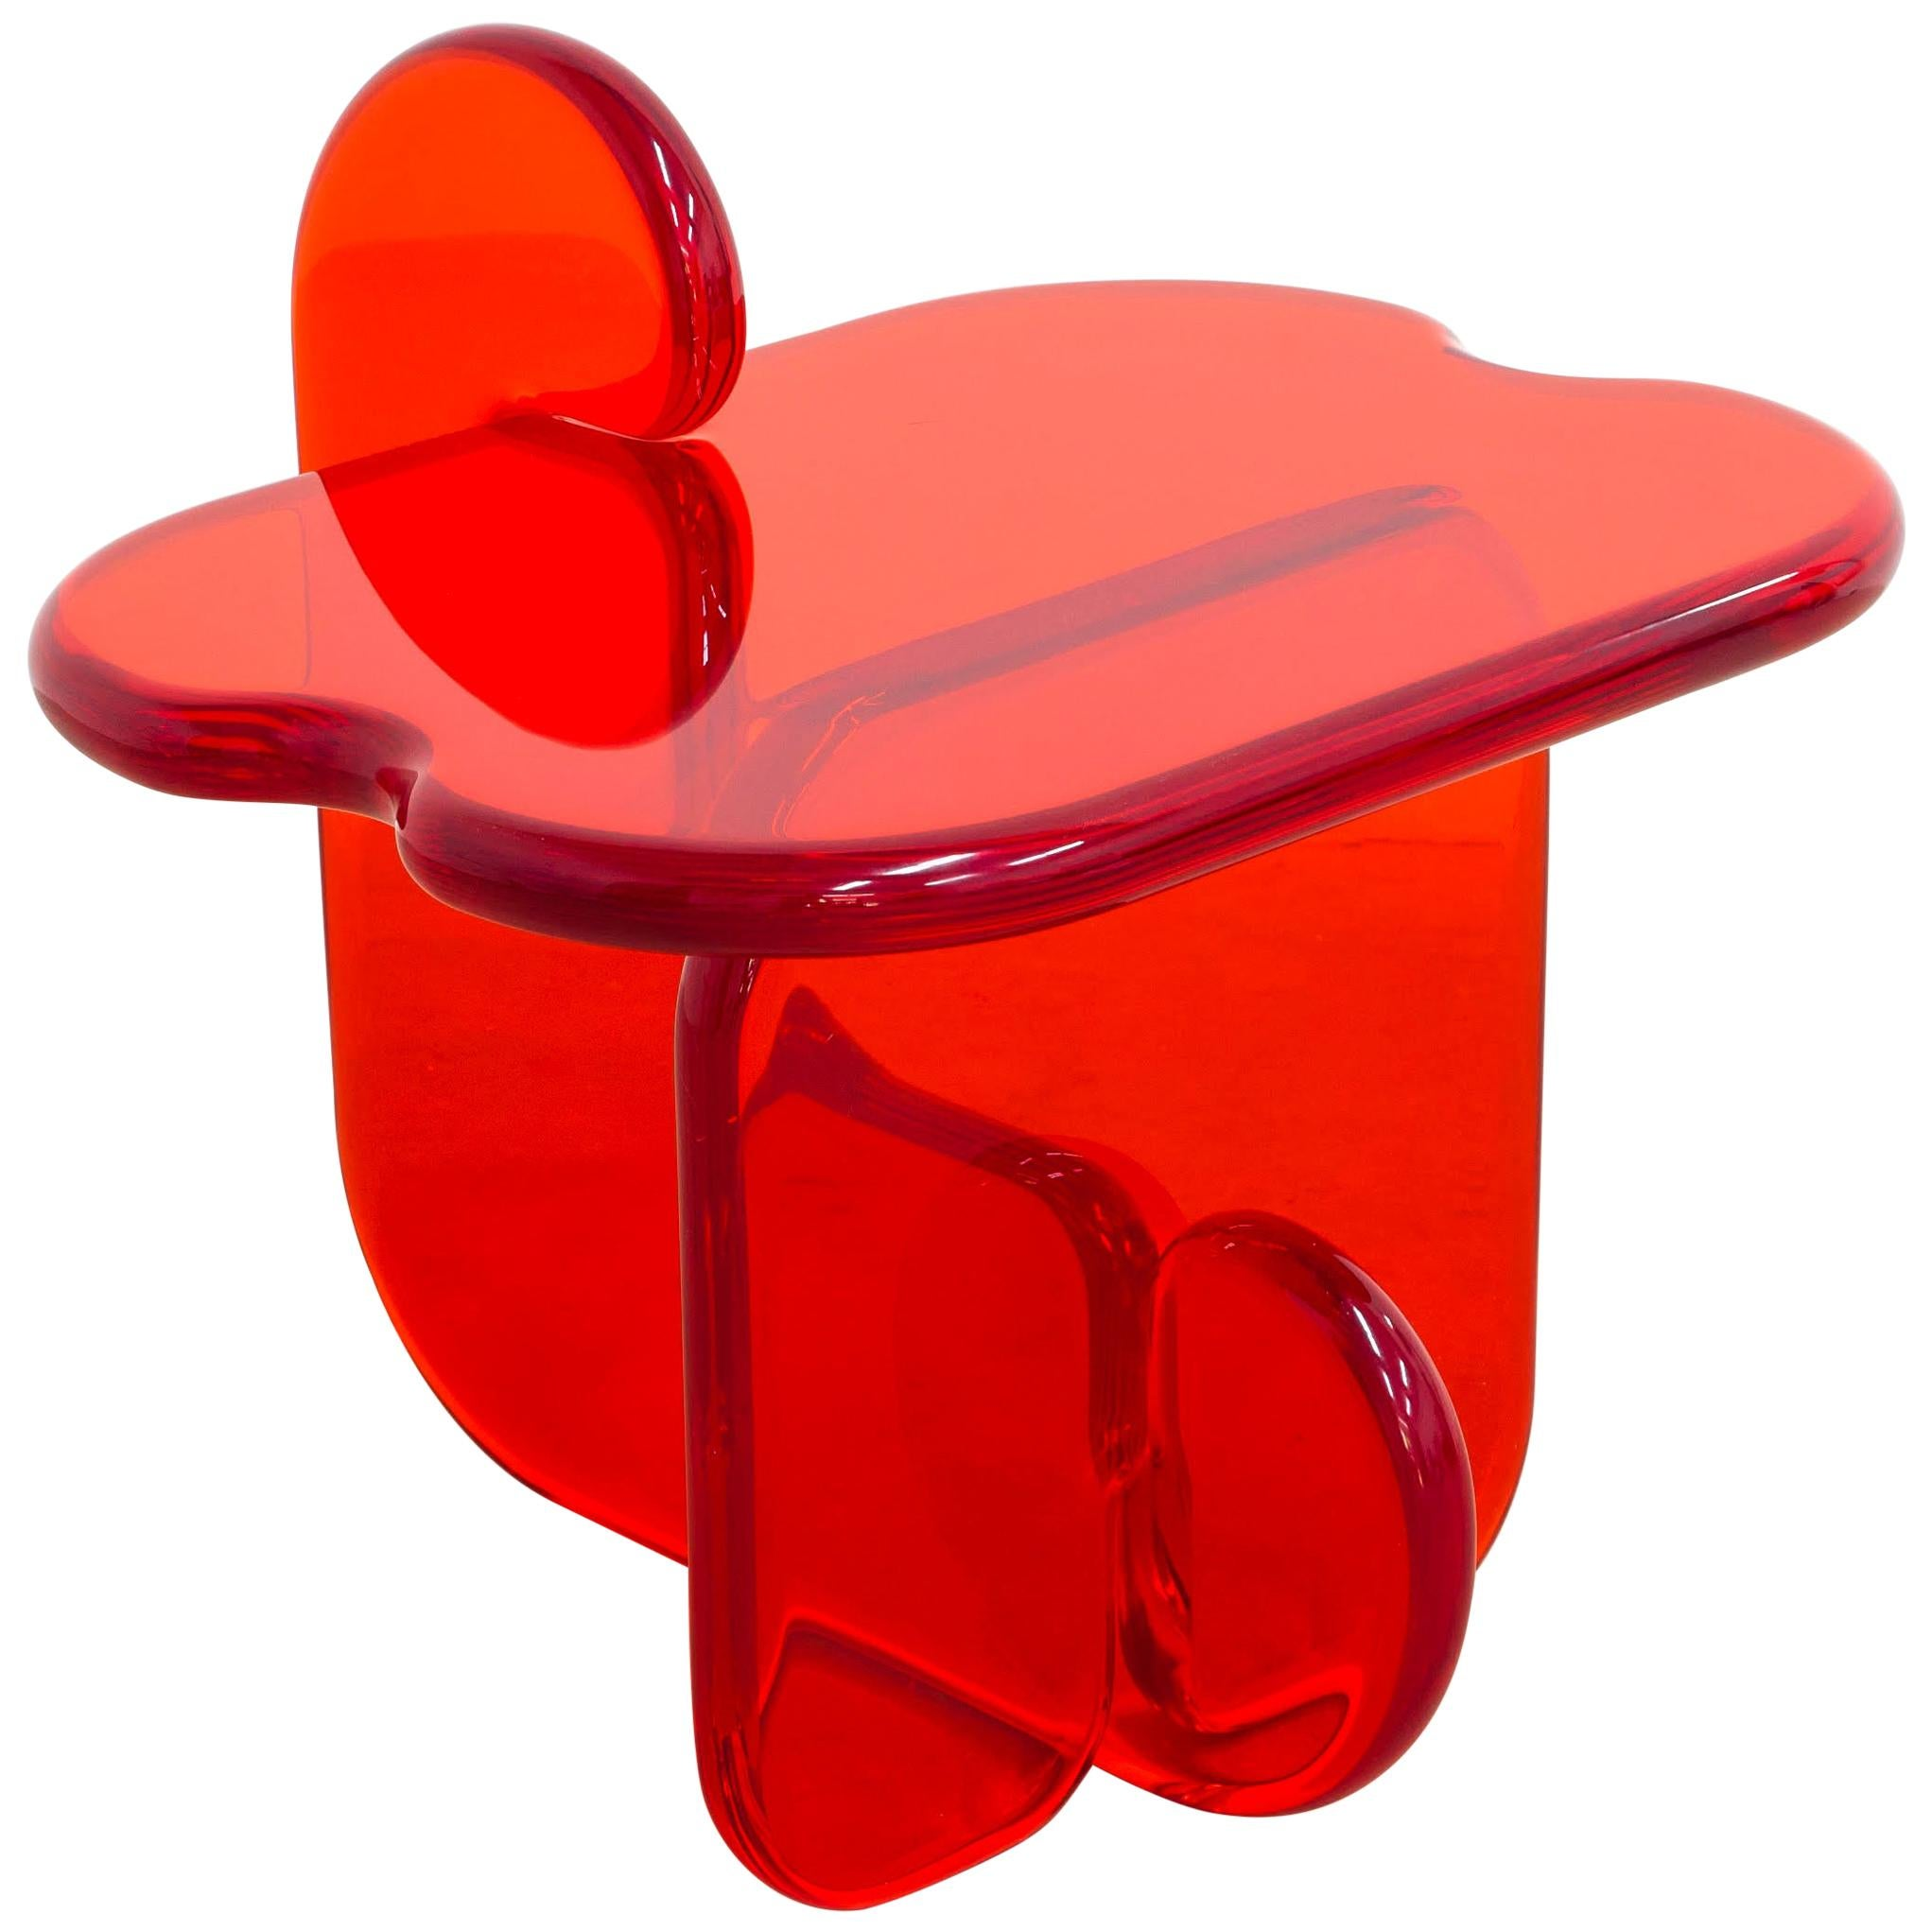 Plump Contemporary Side Table in Polyurethane Resin by Ian Cochran